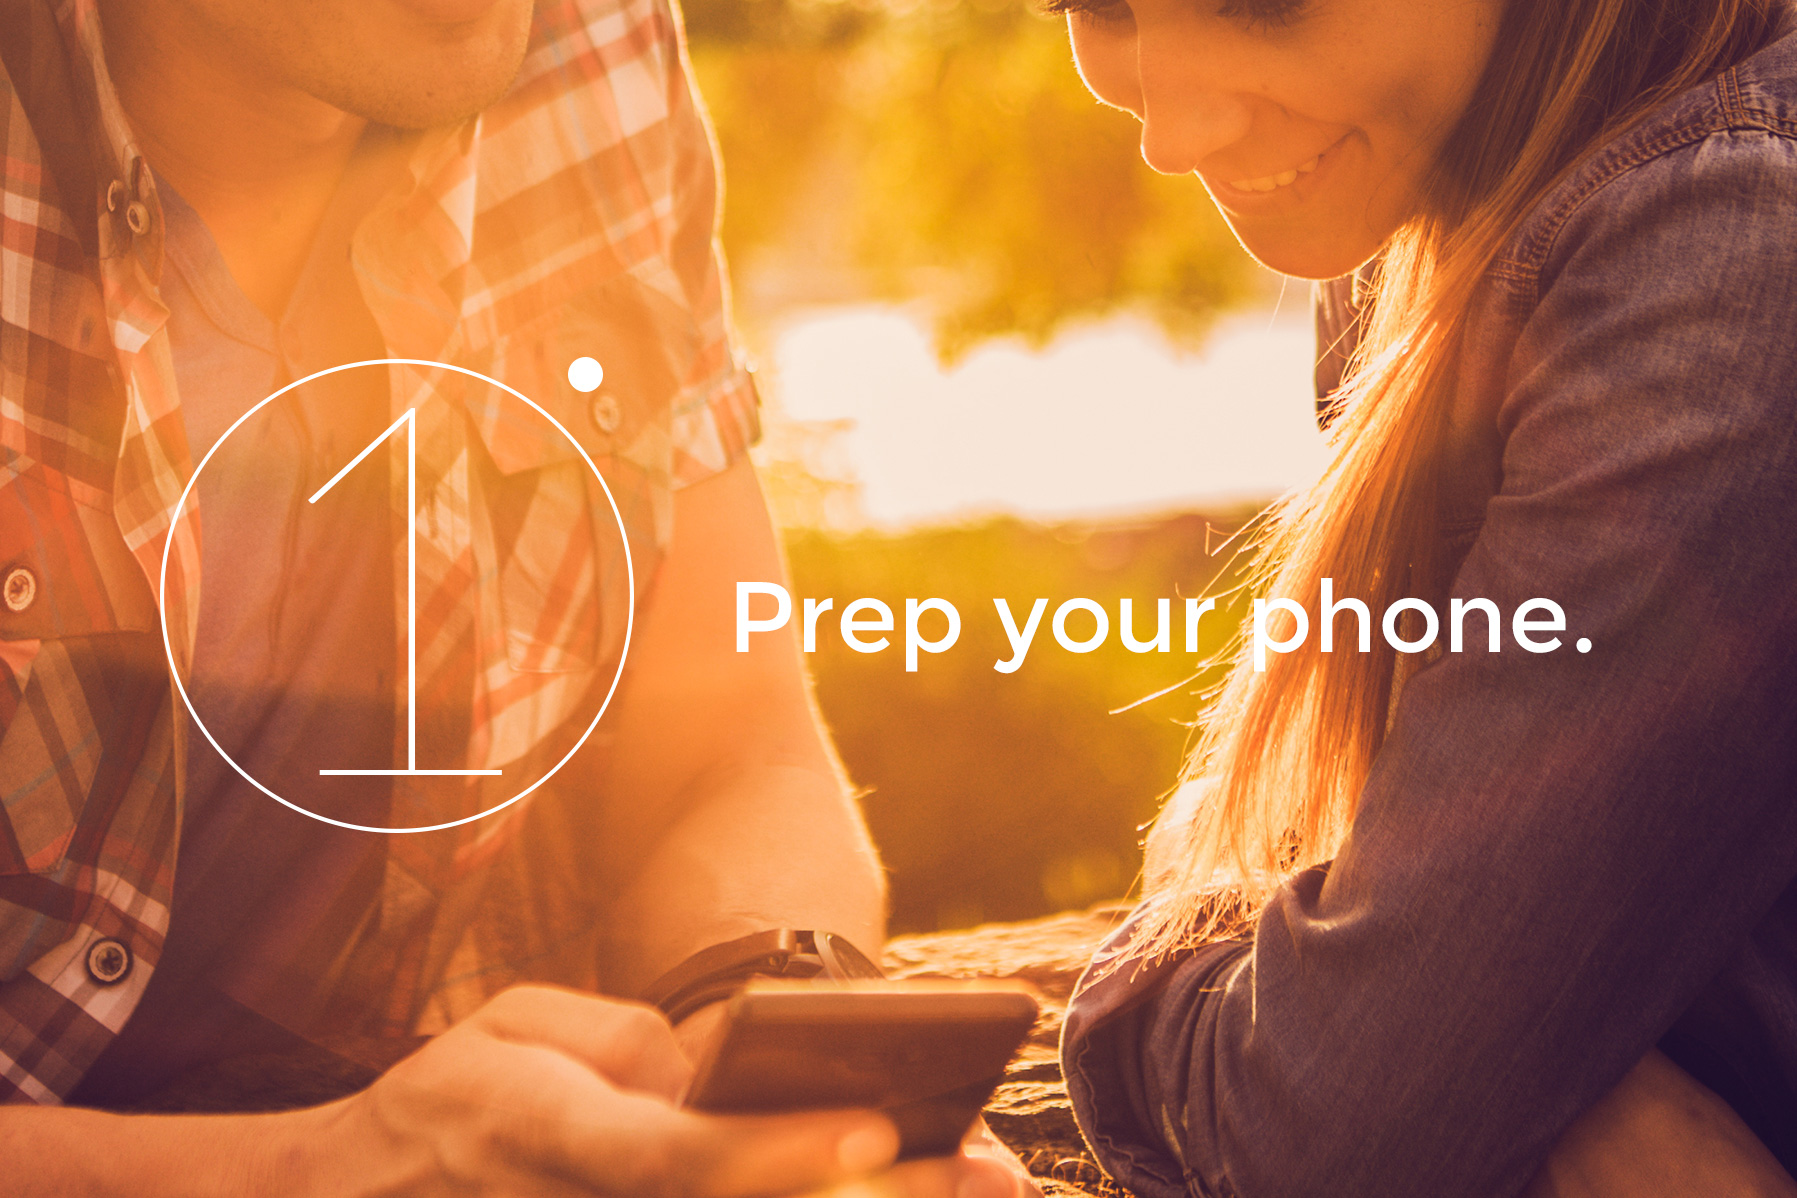 prep-your-phone